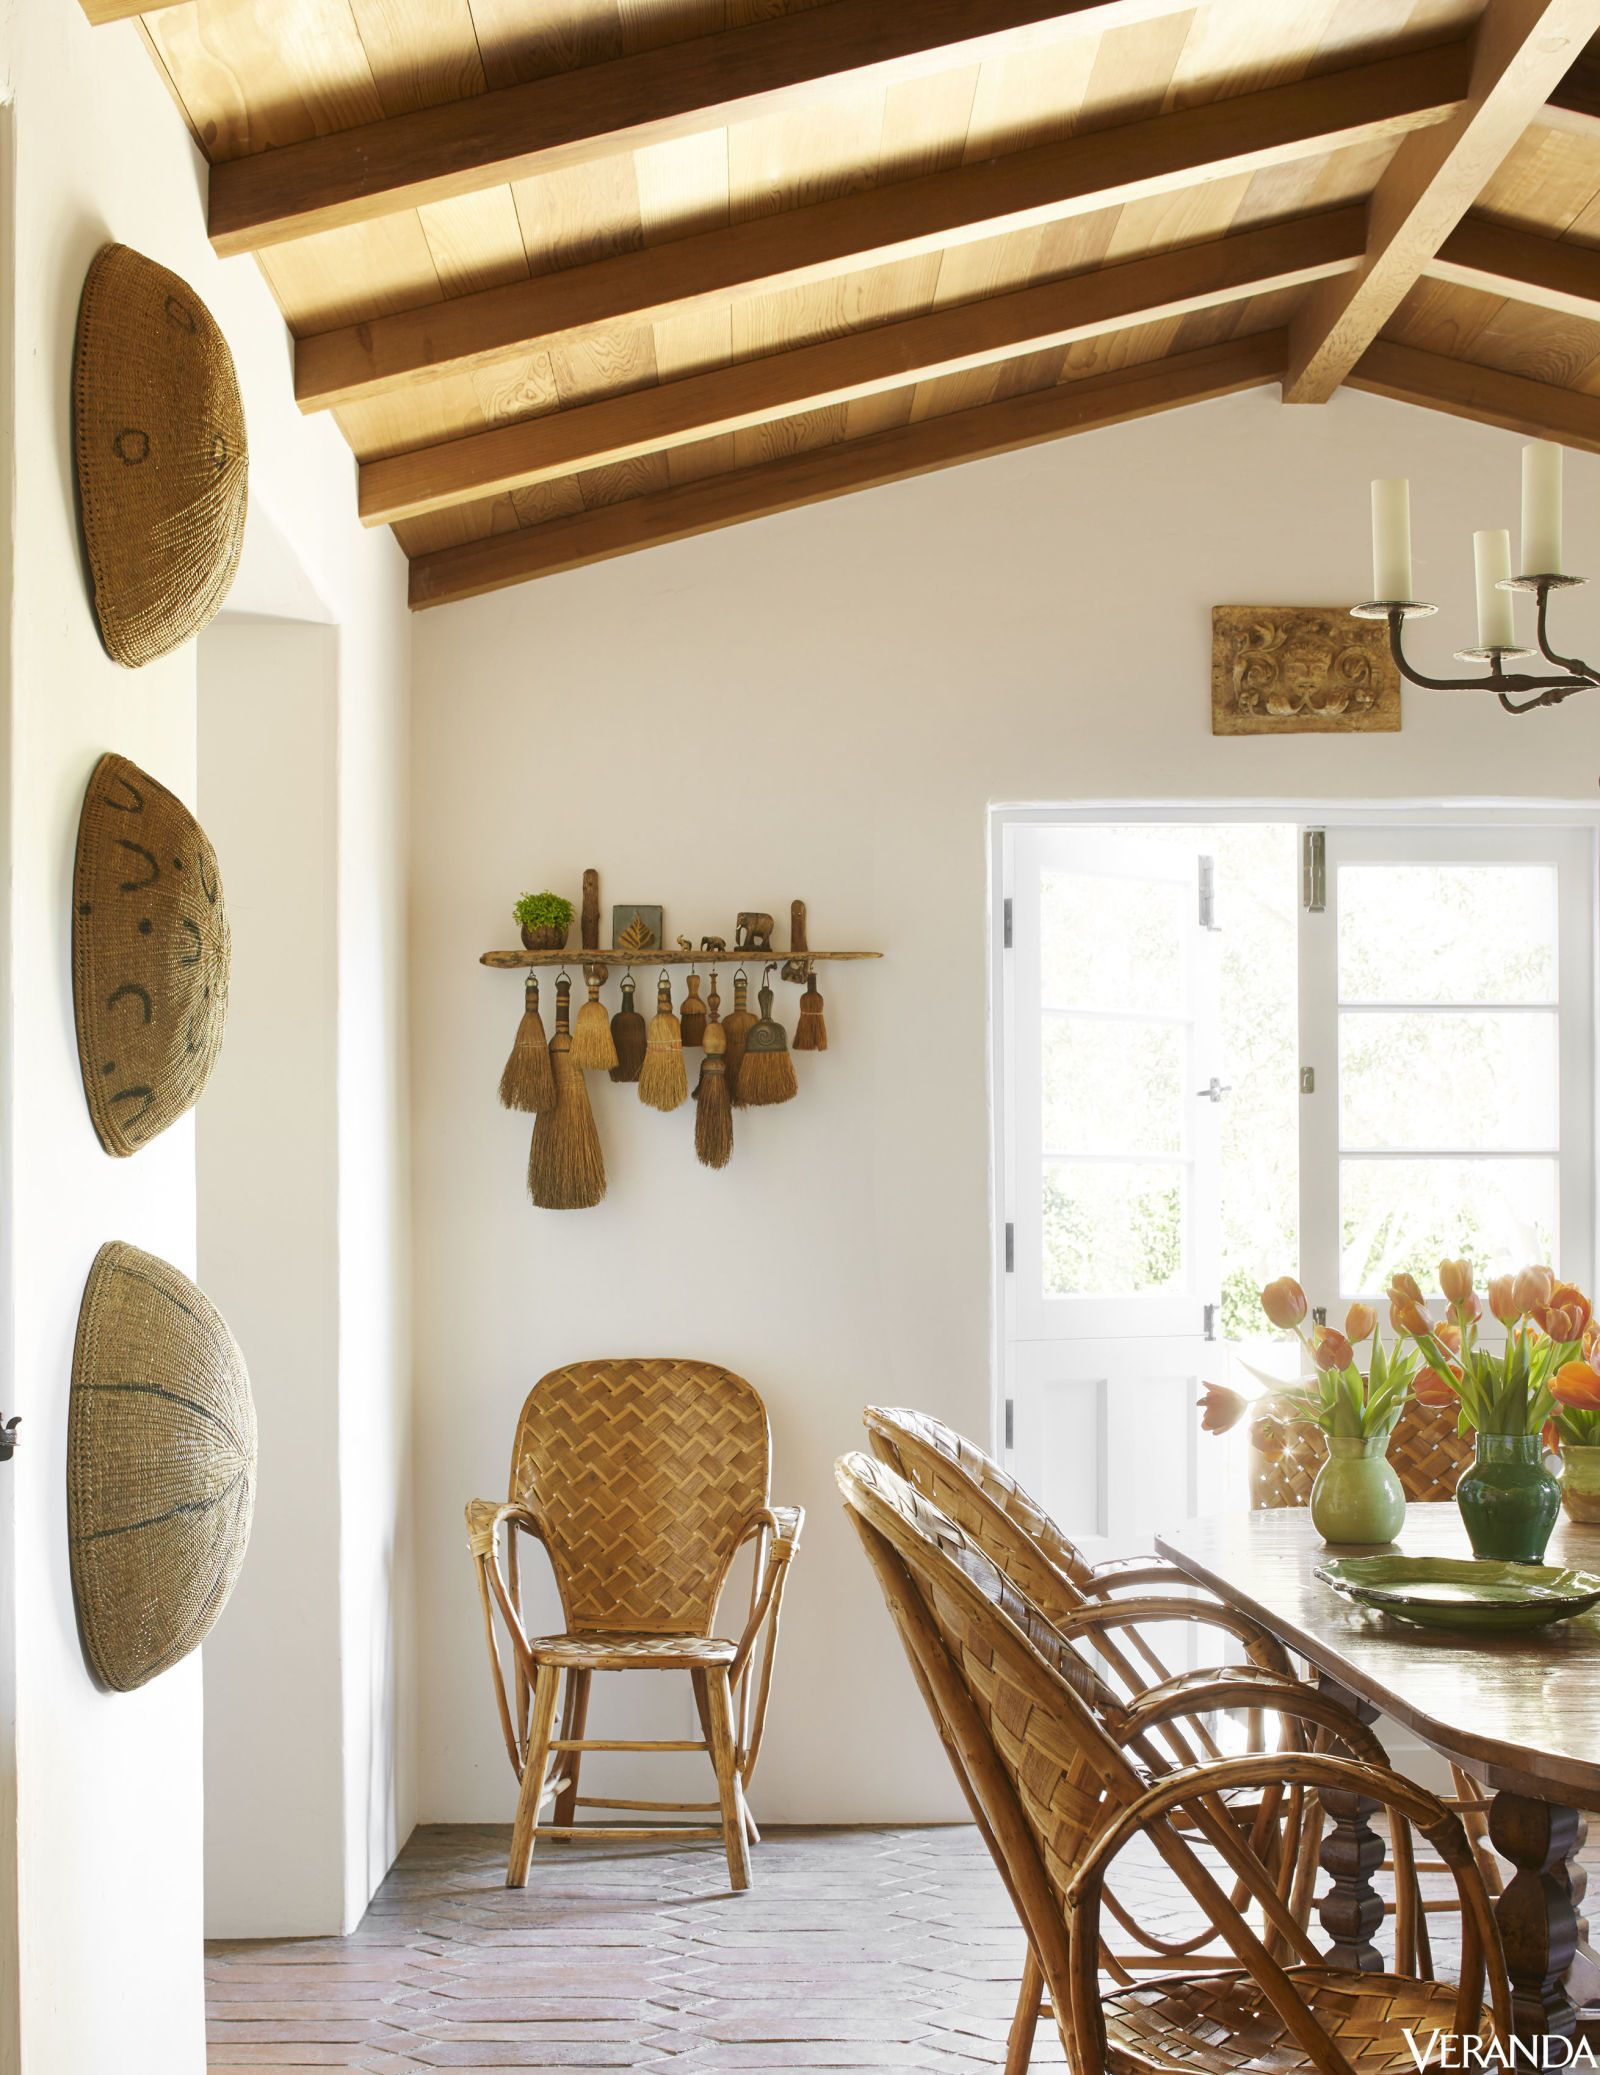 HOUSE TOUR Vintage French Rattan Chairs And Painted African Baskets In The Dining Room A Sun Kissed Retreat Inspired By Spanish History